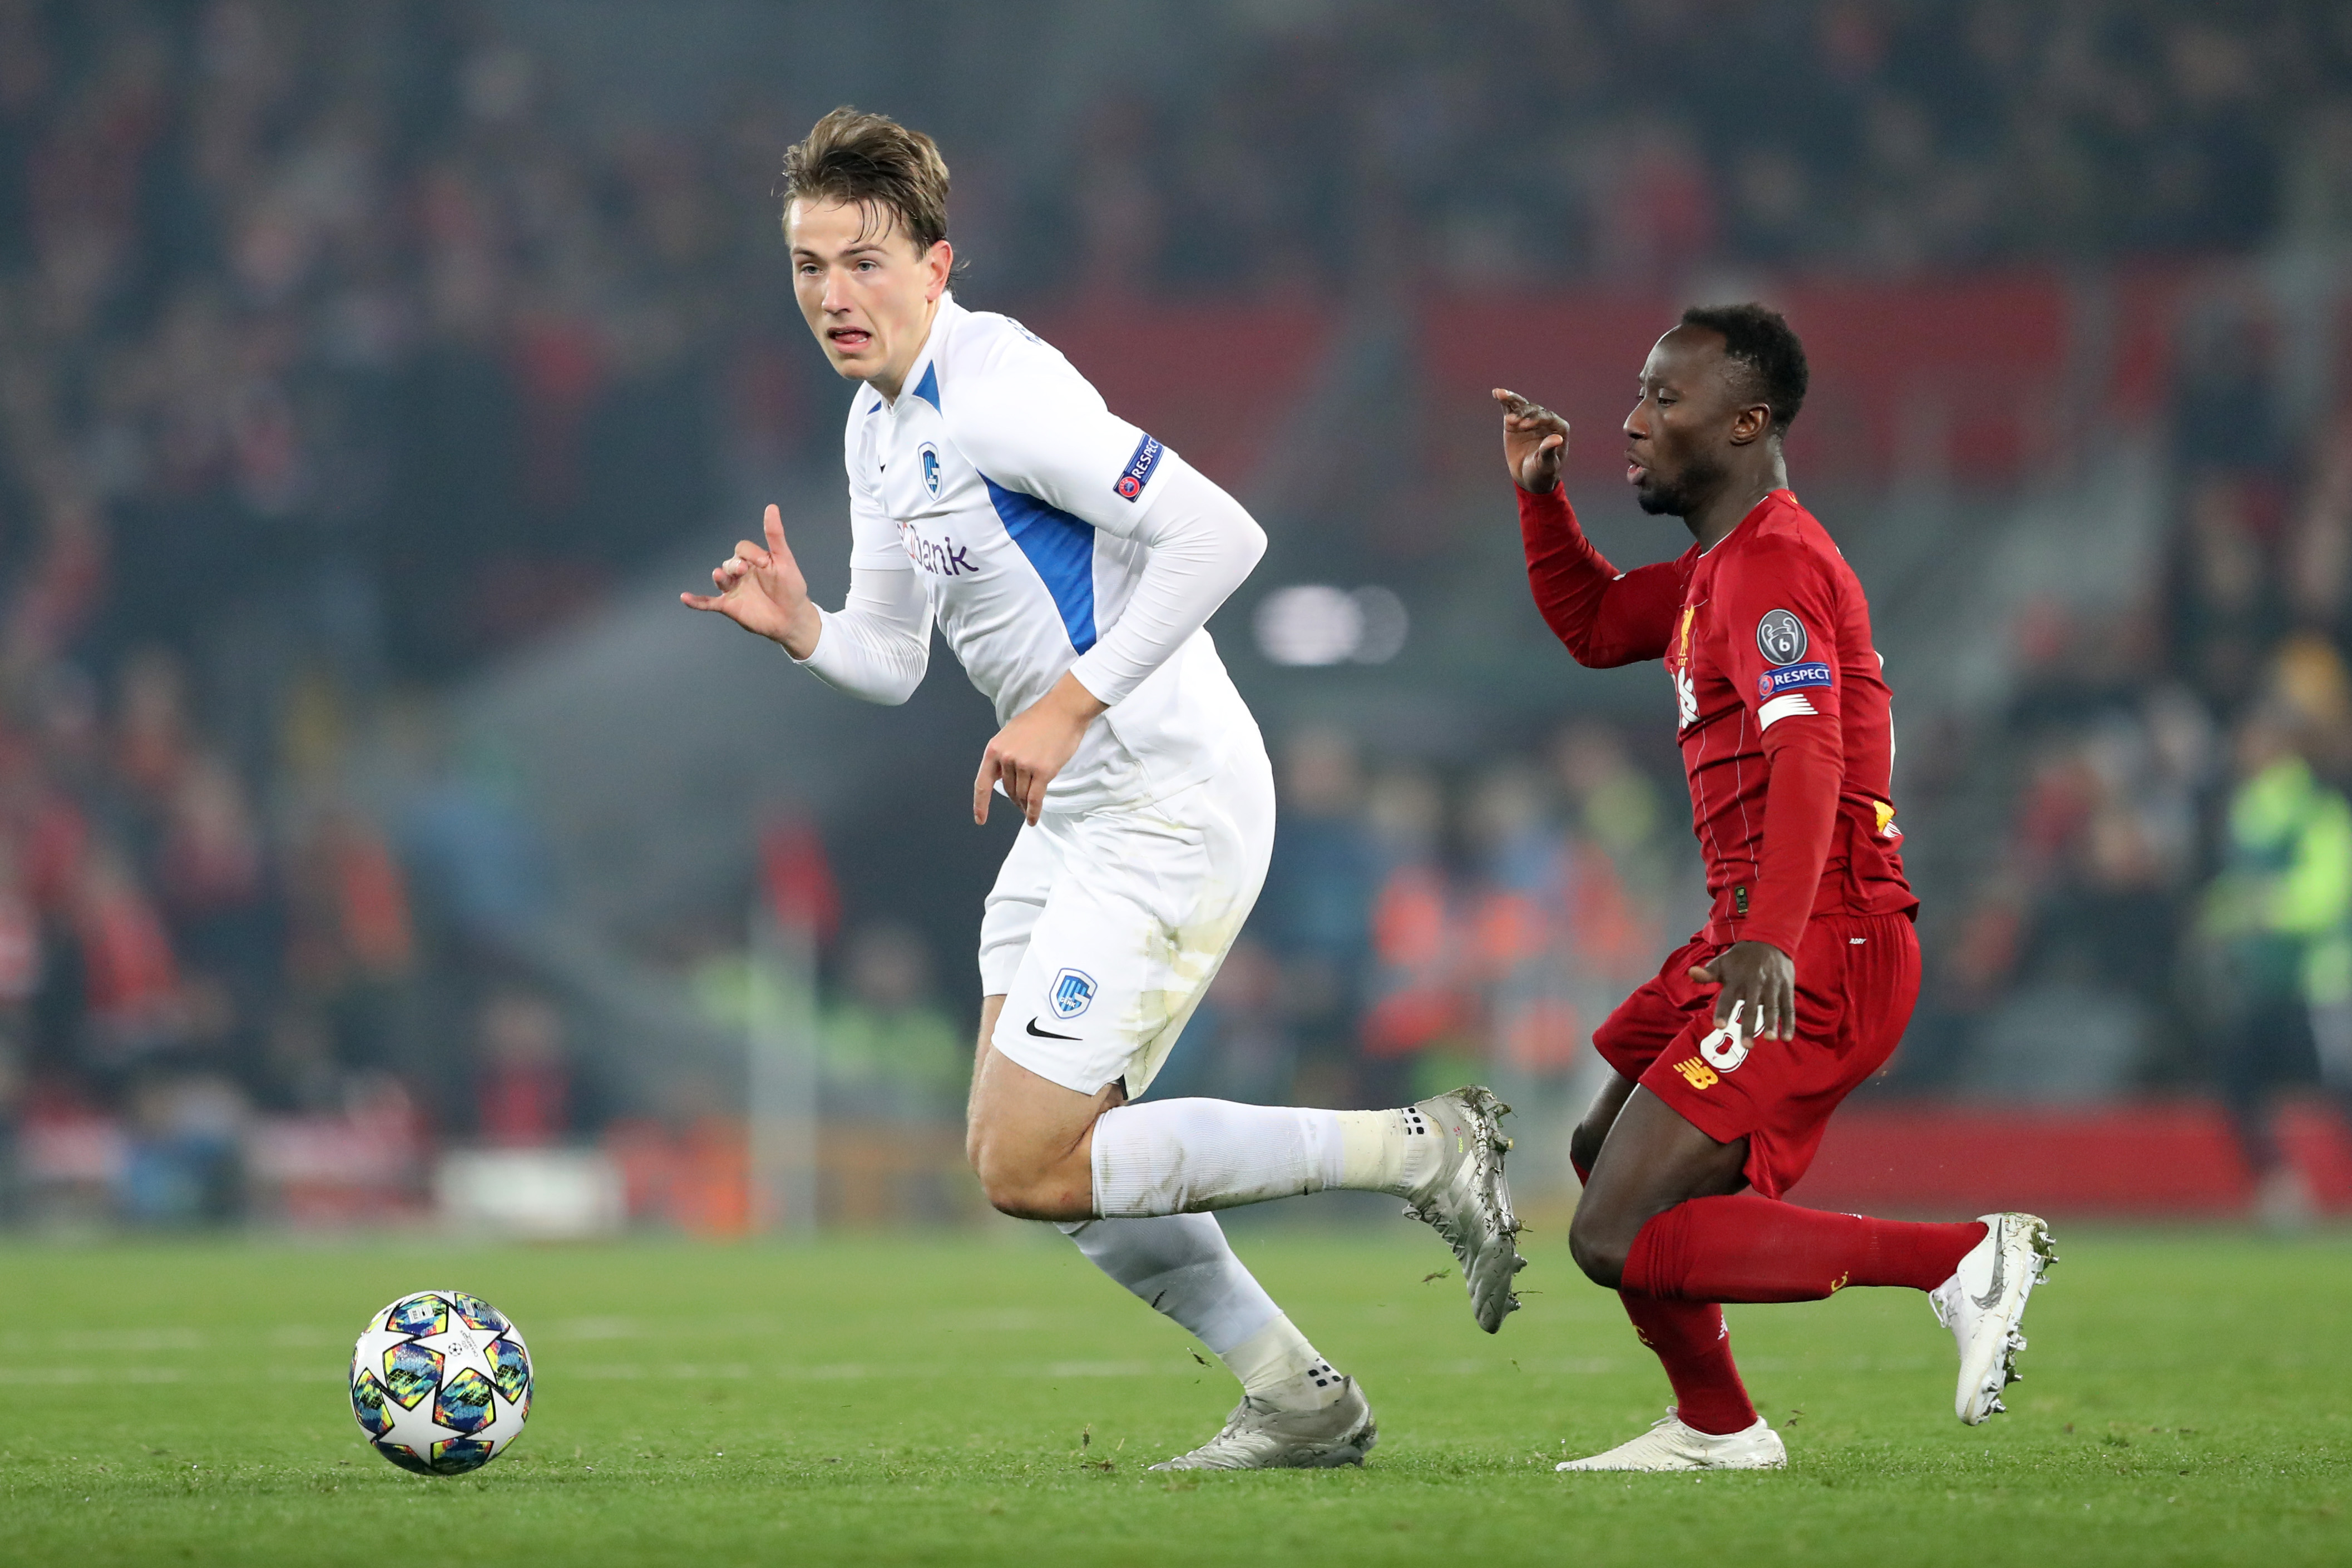 Sander Berge impressed Jurgen Klopp during their Champions League clash. (Photo by Alex Pantling/Getty Images)